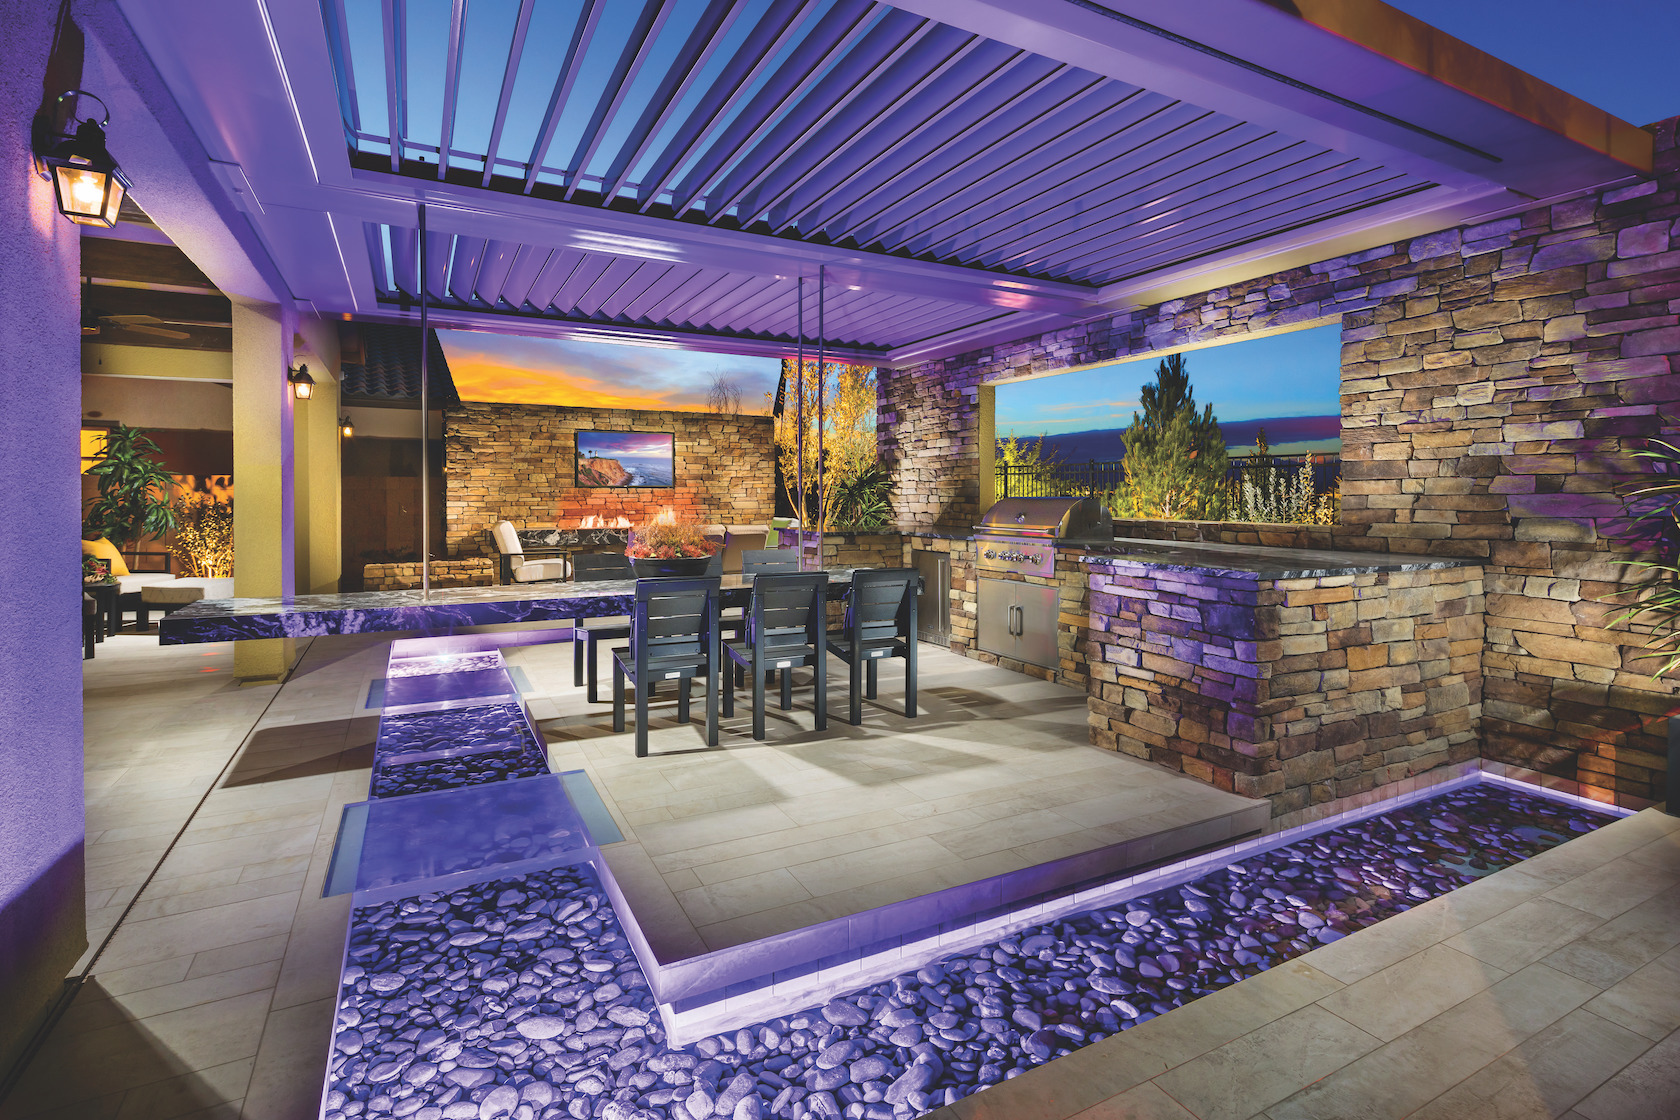 Tremendous outdoor dining space with purple accent lighting